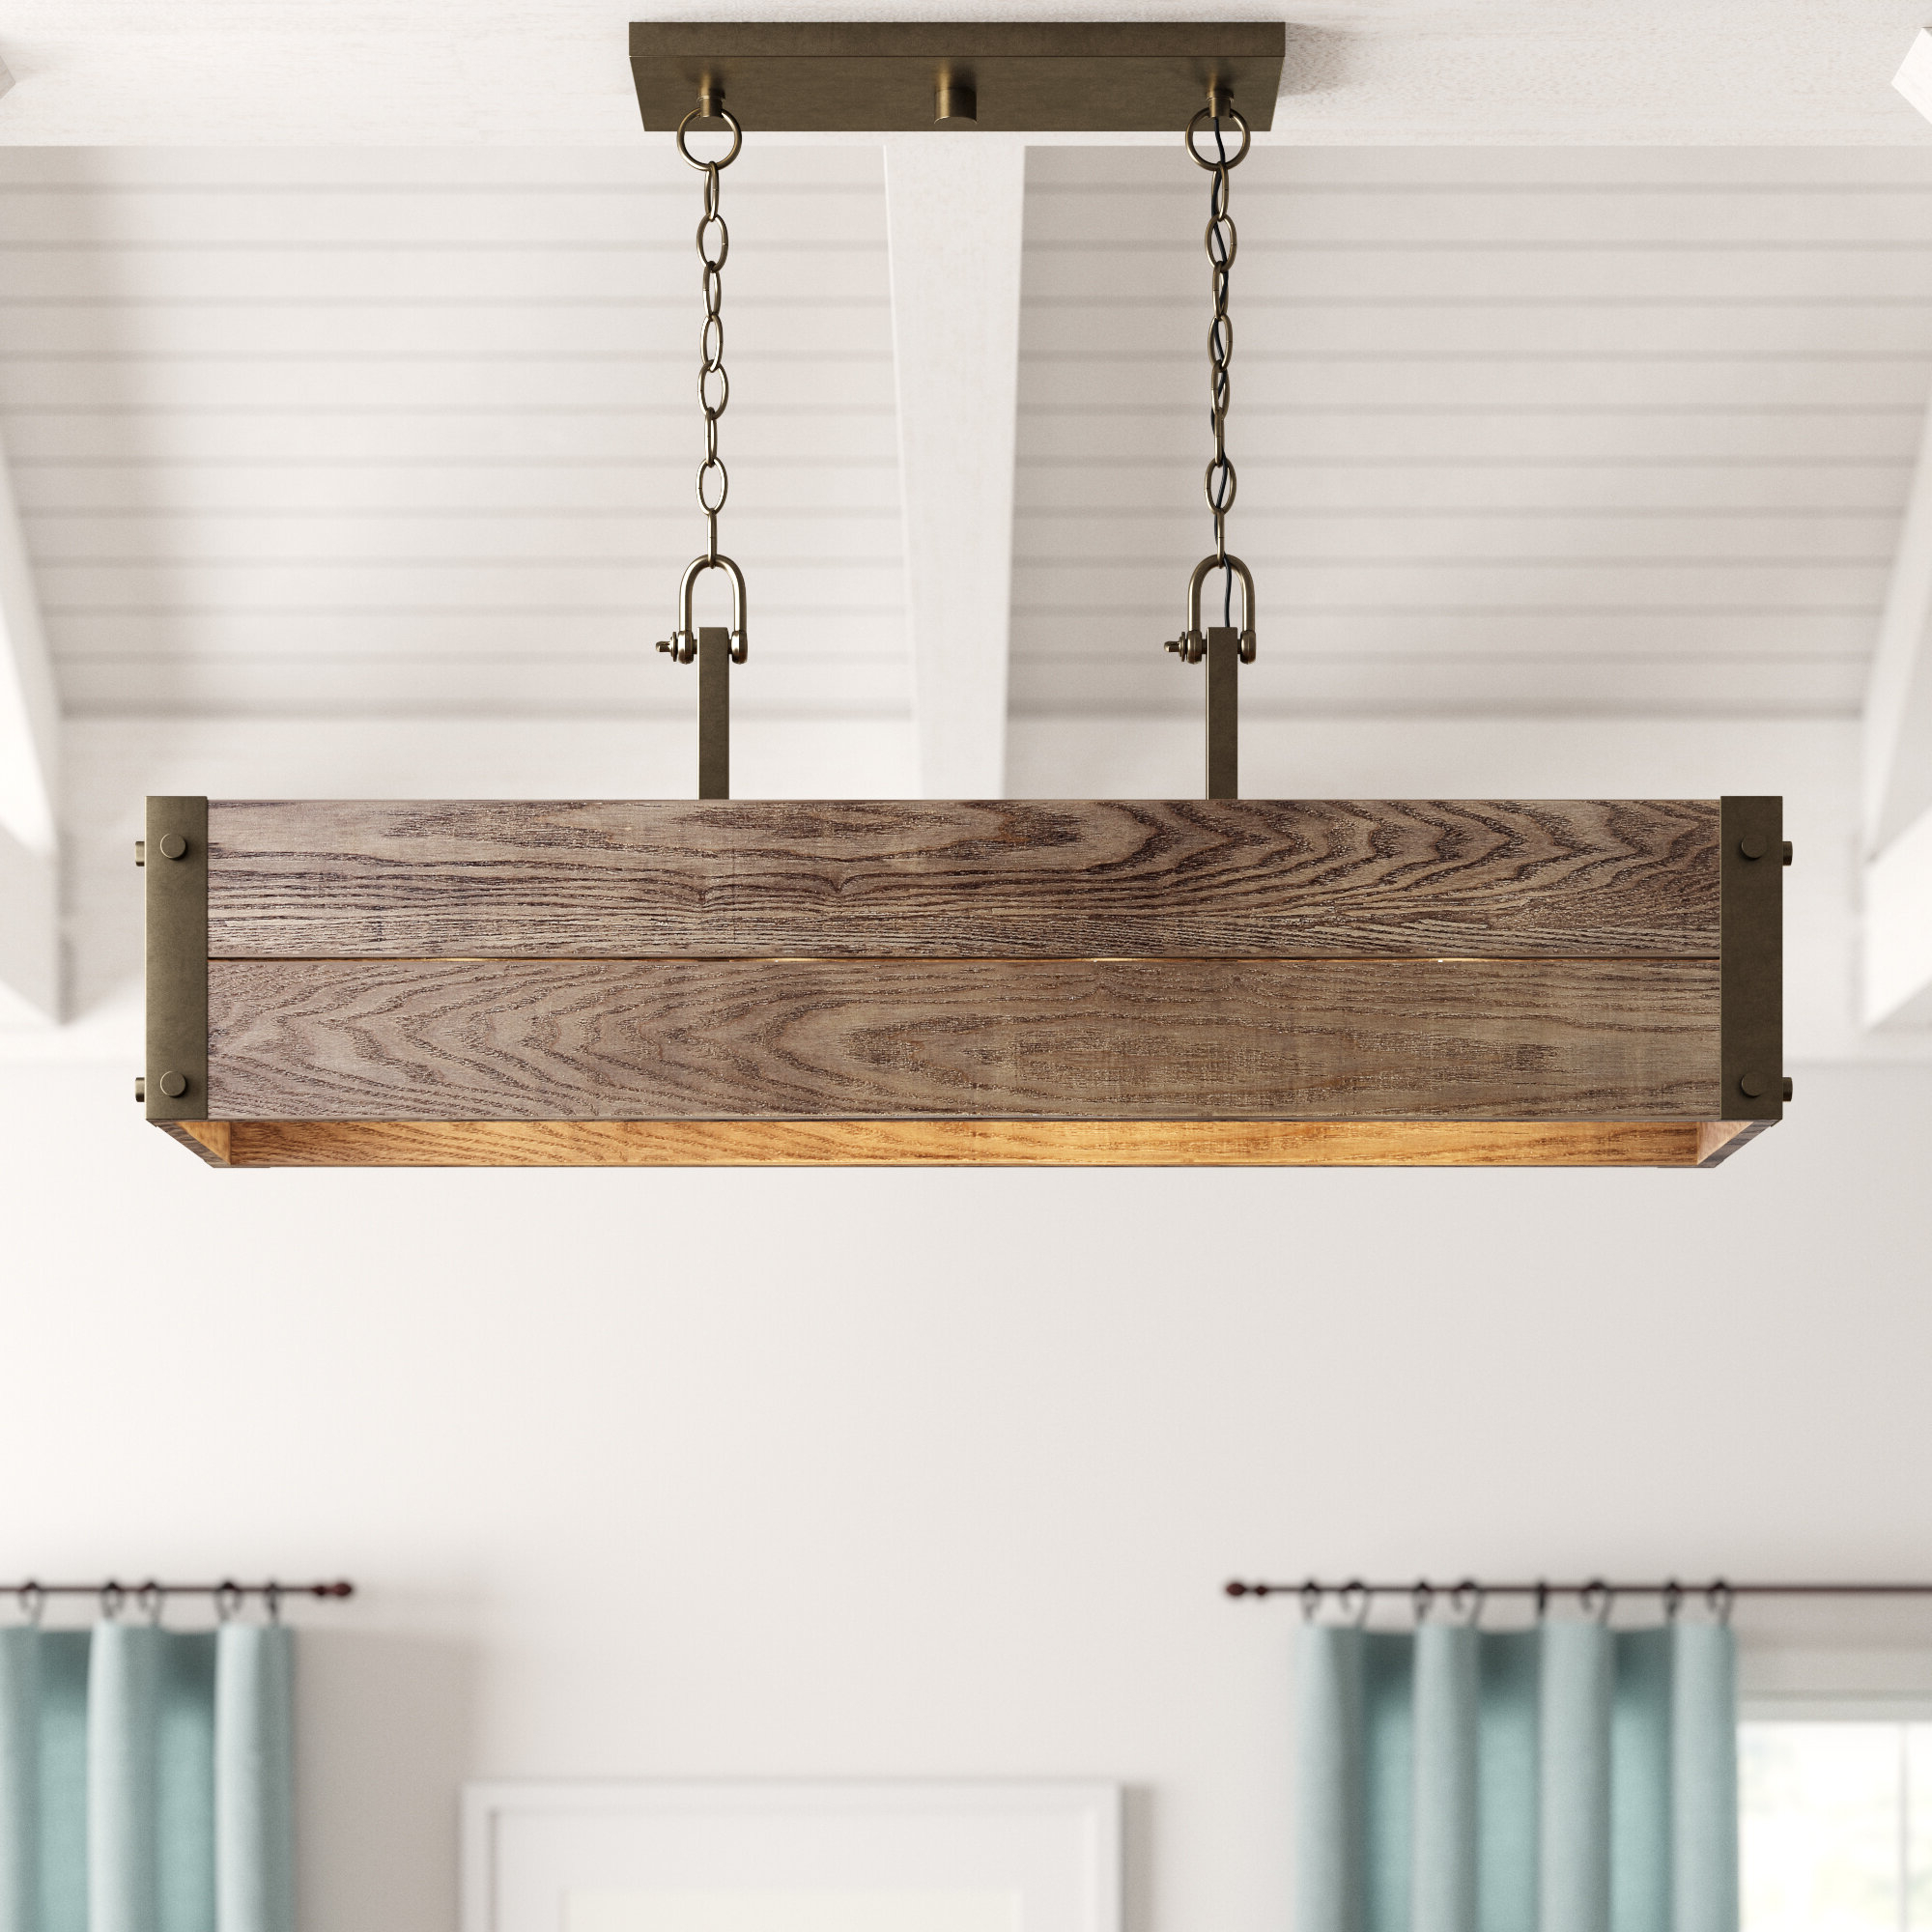 2020 Cathey 4 Light Kitchen Island Linear Pendant In Cinchring 4 Light Kitchen Island Linear Pendants (View 1 of 25)